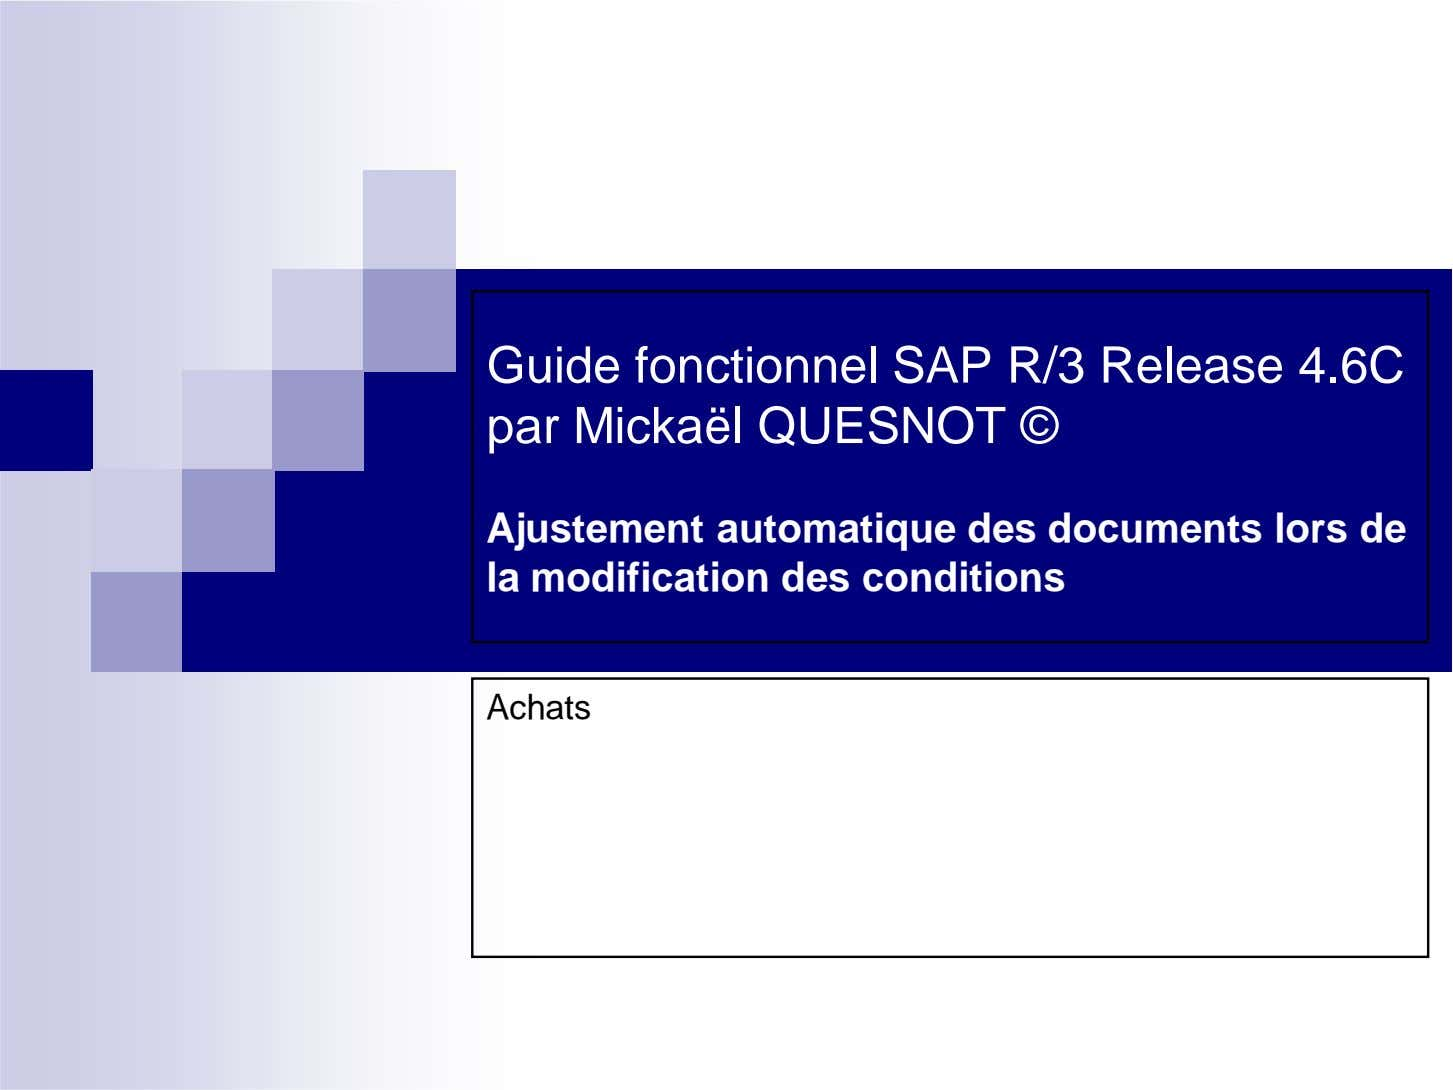 Guide fonctionnel SAP R/3 Release 4.6C par Mickaël QUESNOT © Ajustement automatique des documents lors